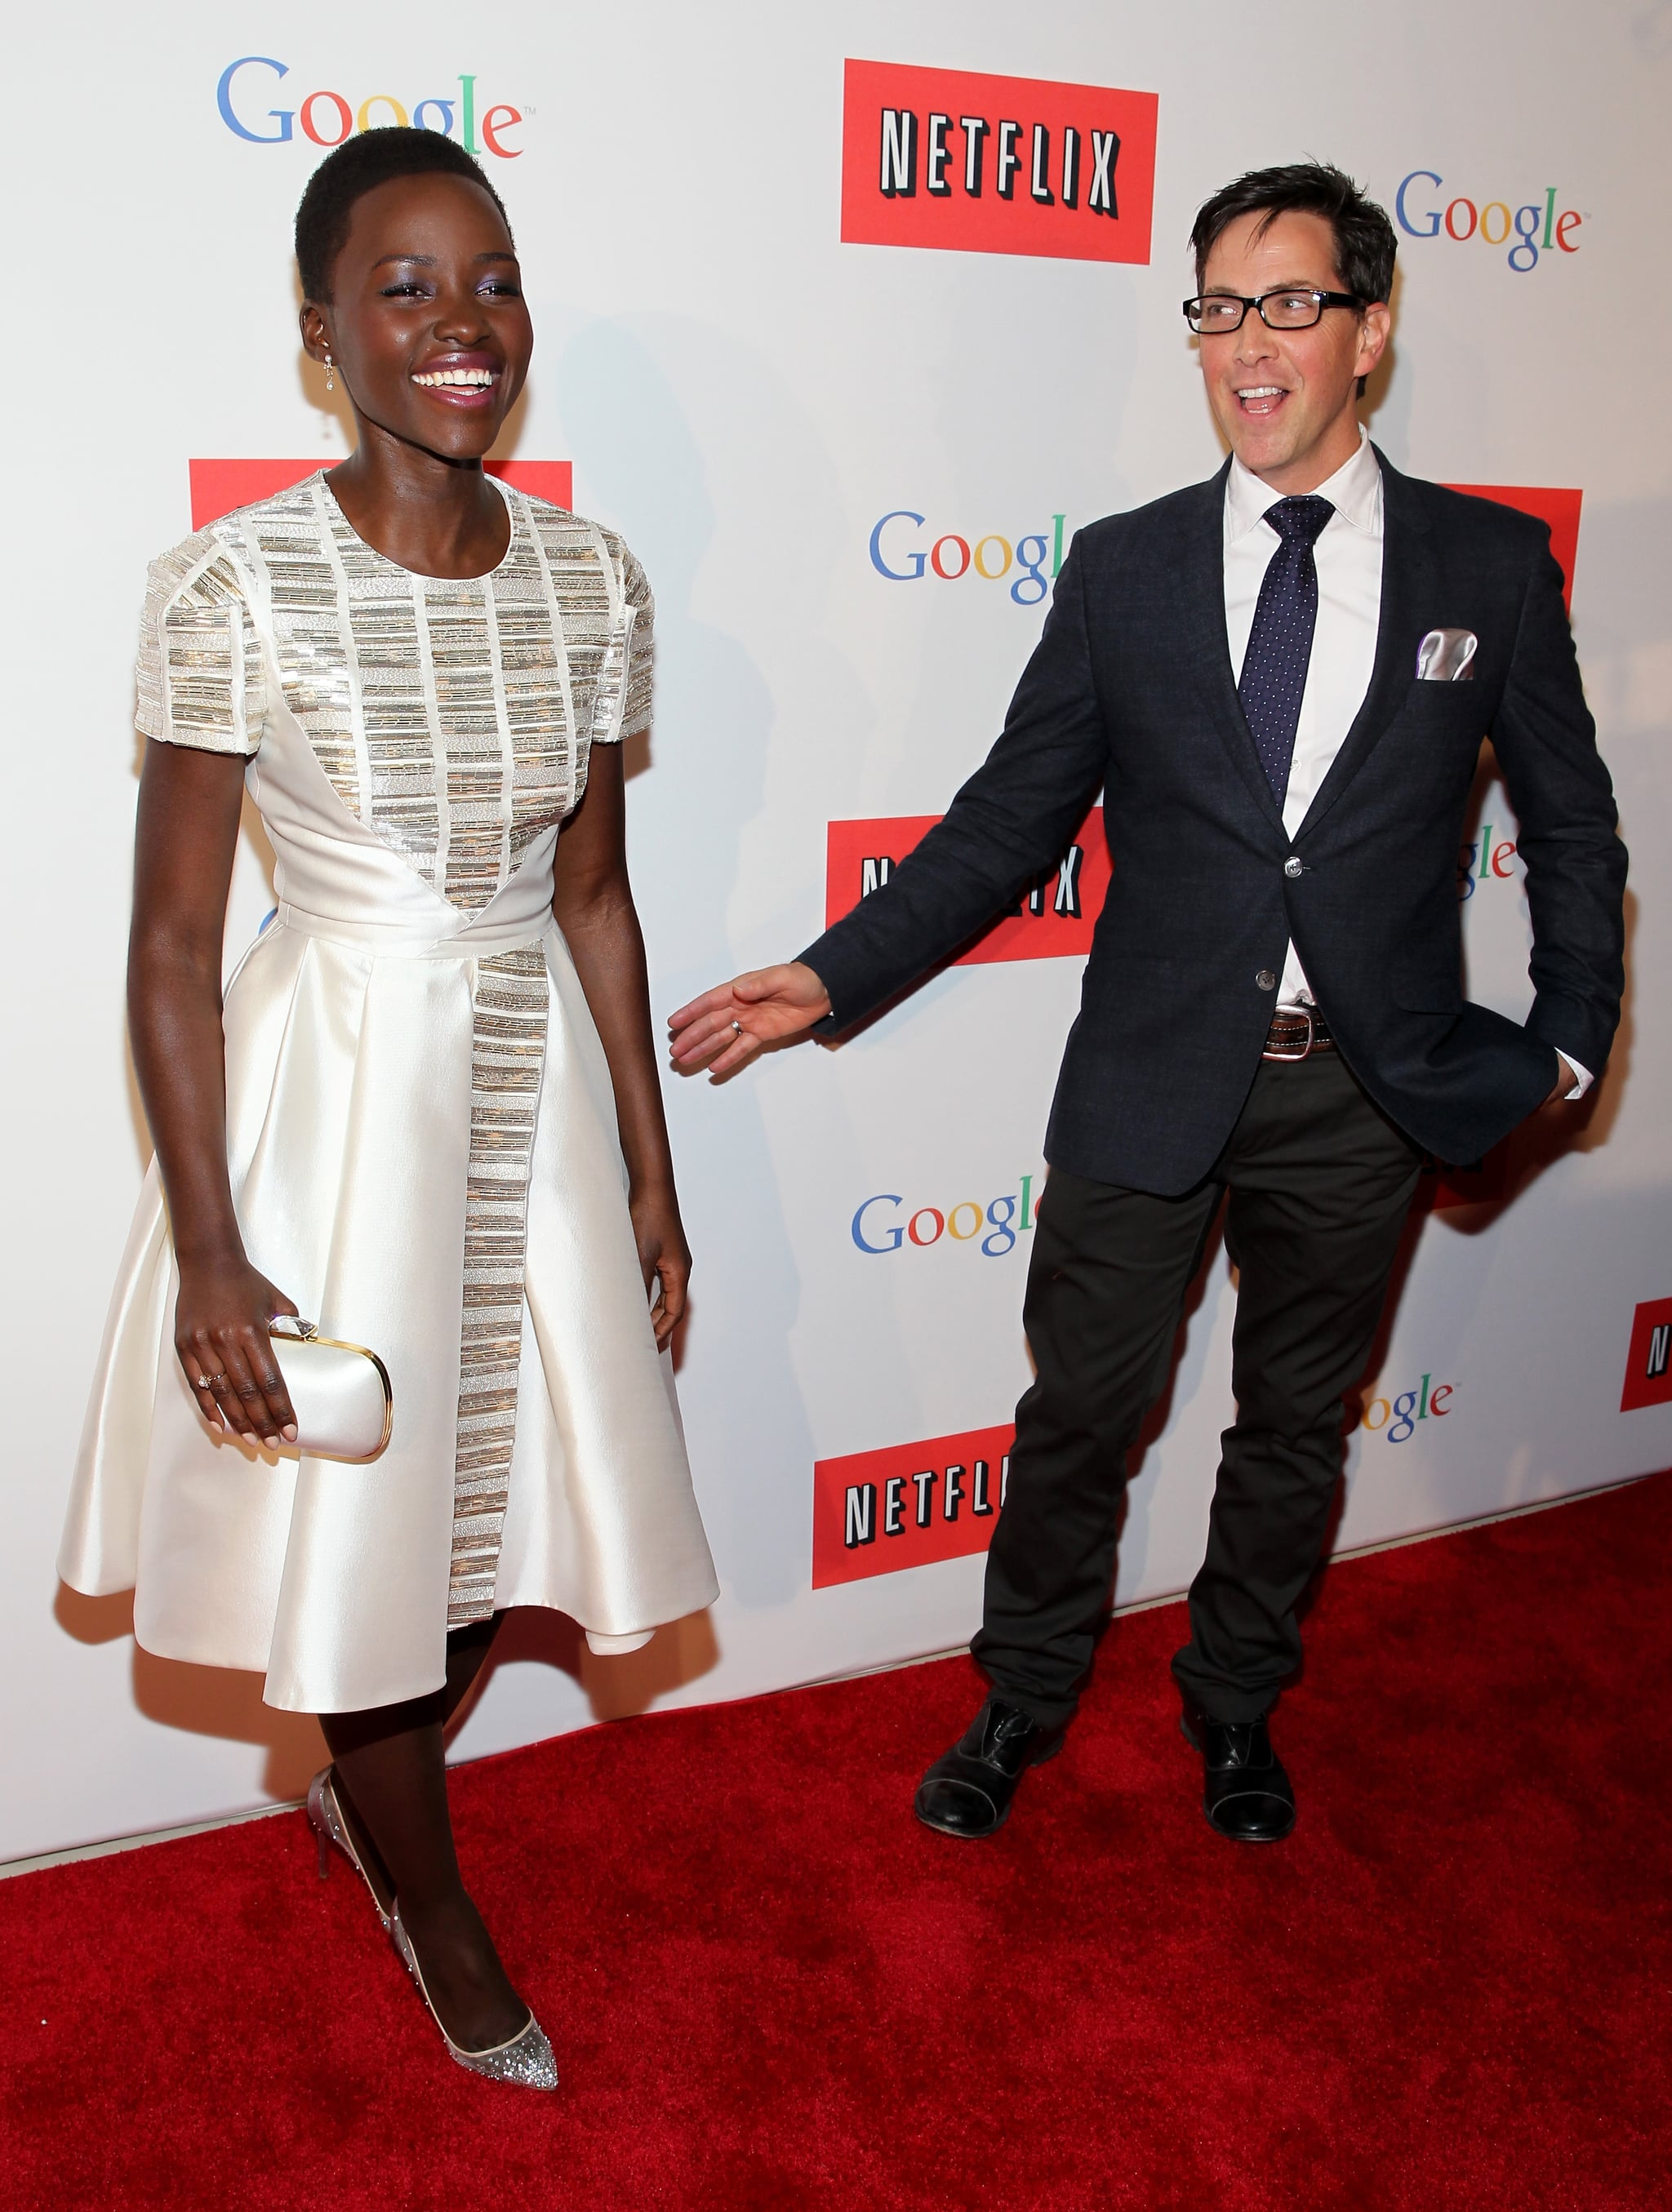 Lupita Nyong'o shared a red carpet moment with Scandal actor Dan Bucatinsky at Google and Netflix's bash on Friday.